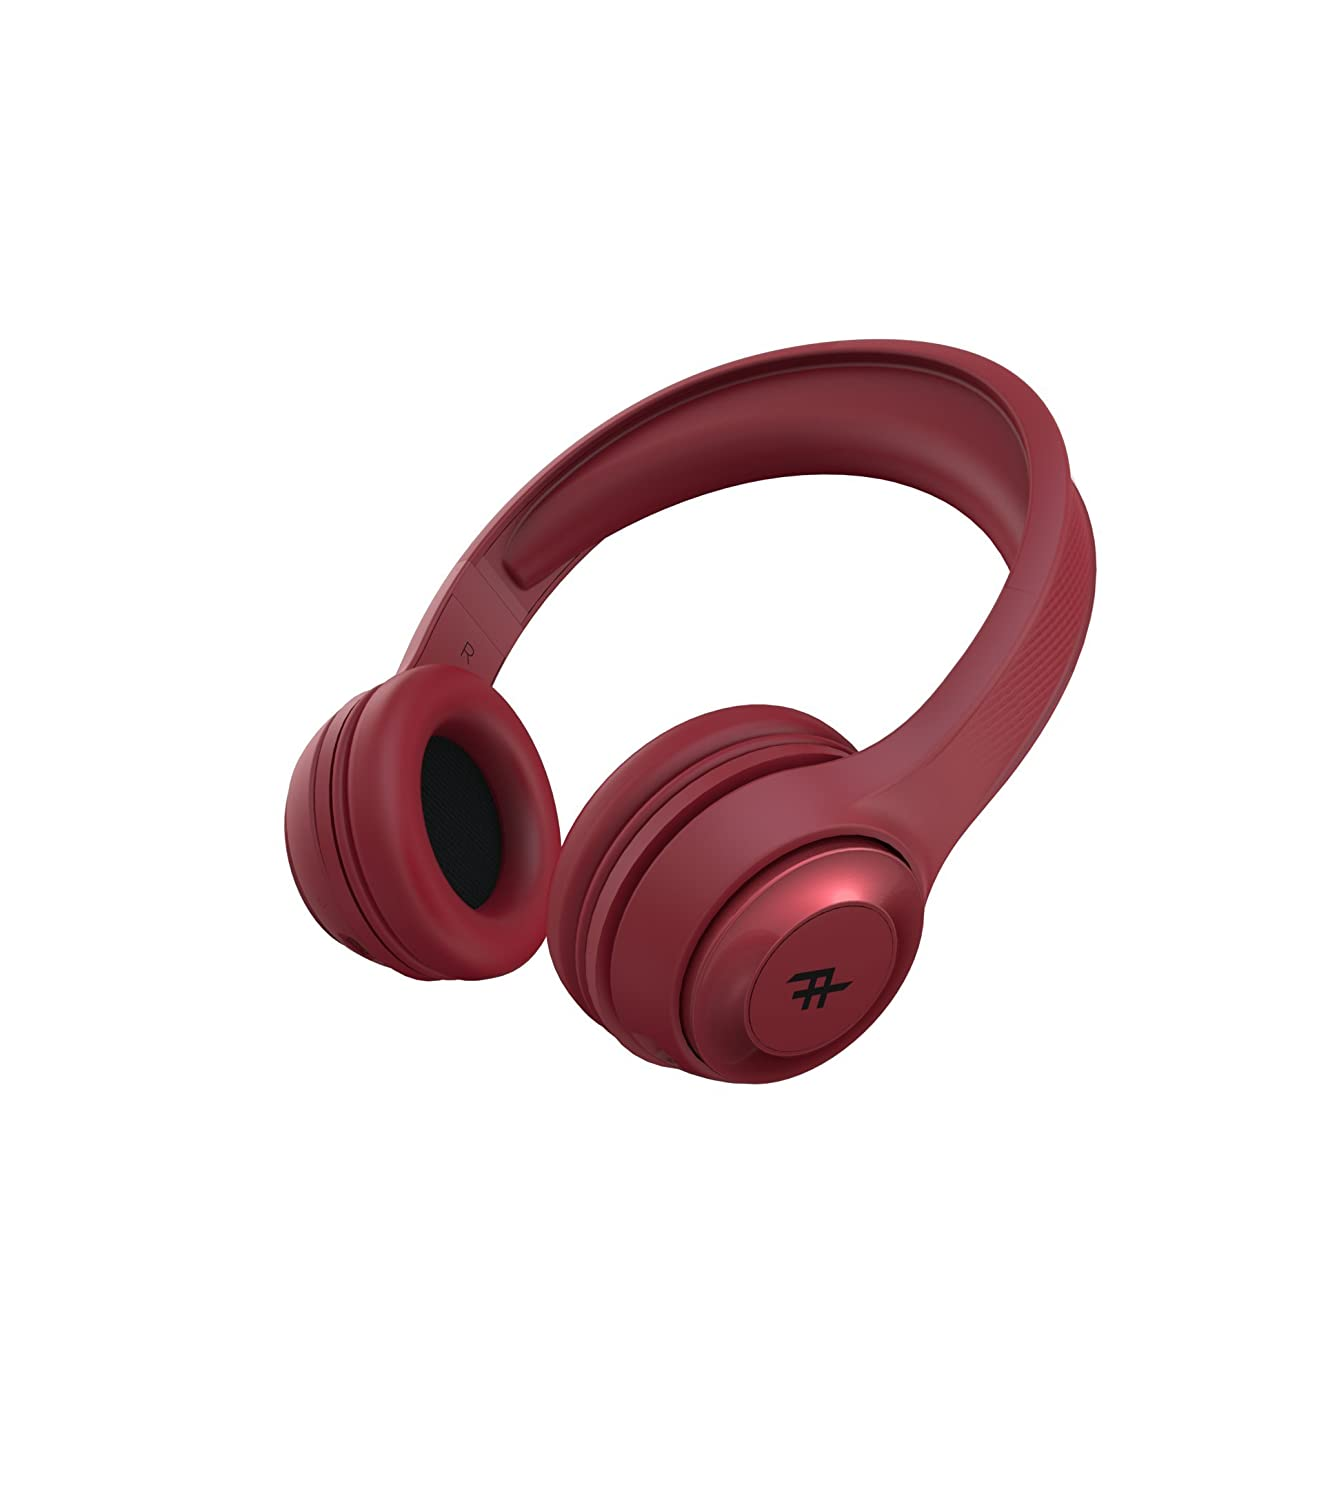 iFrogz Audio - Toxix Wireless Over-The-Ear Wireless Headphones - Red